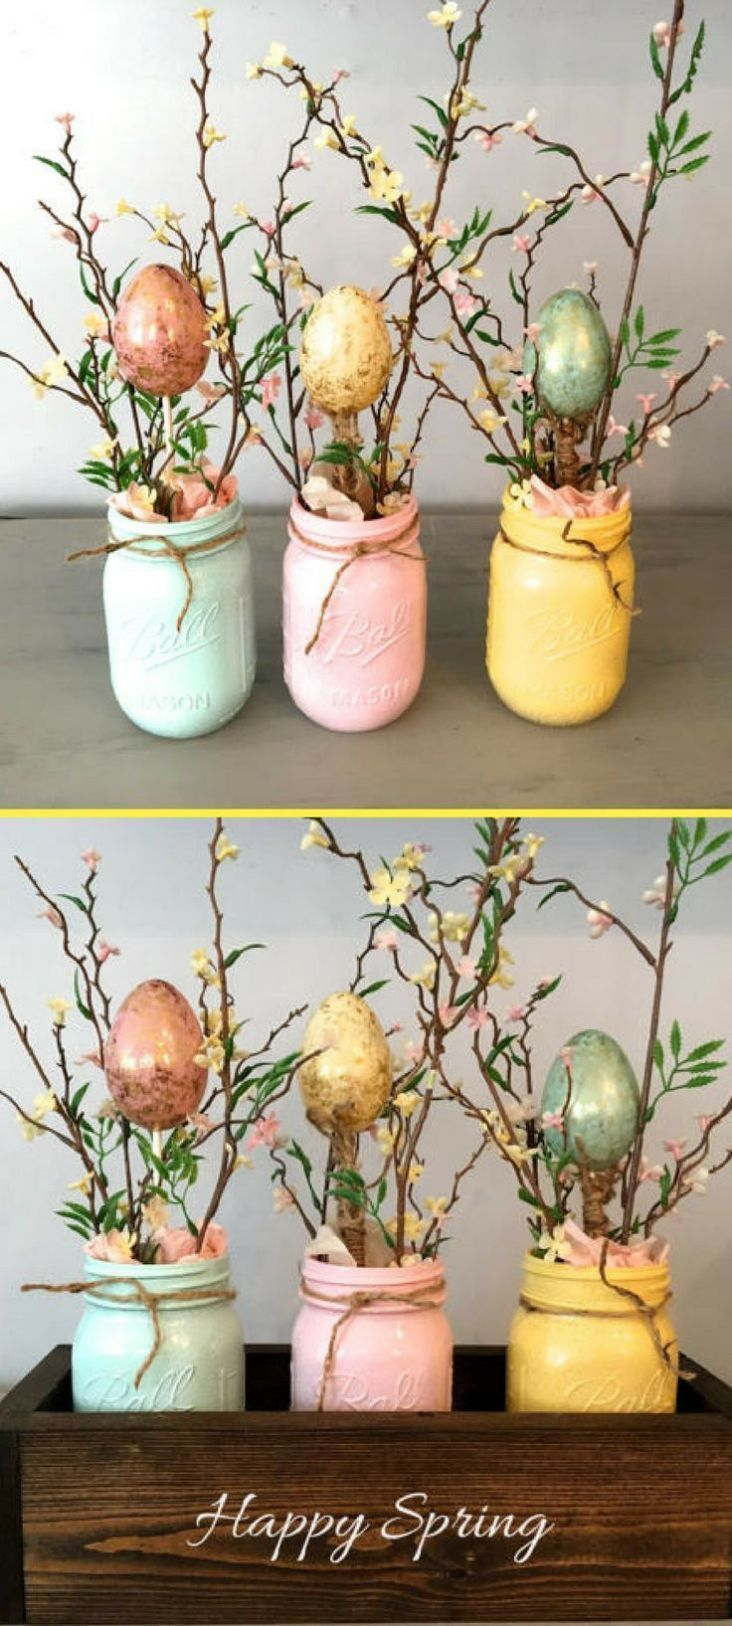 50 Gorgeous DIY Easter Decor Ideas - This Tiny Blue House